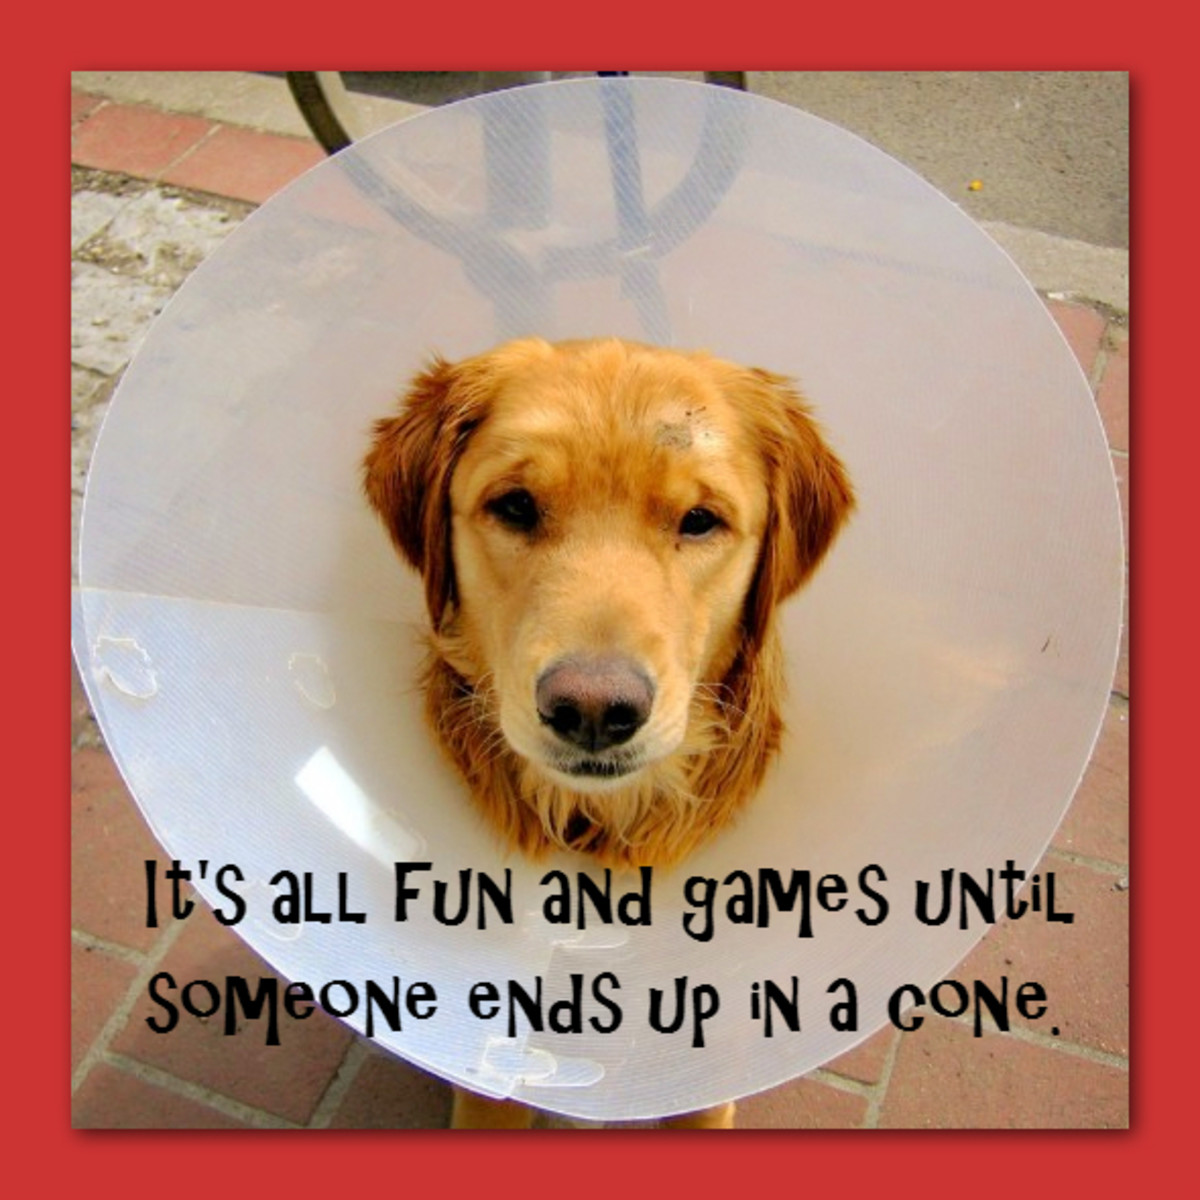 It's all fun and games until someone ends up in a cone.